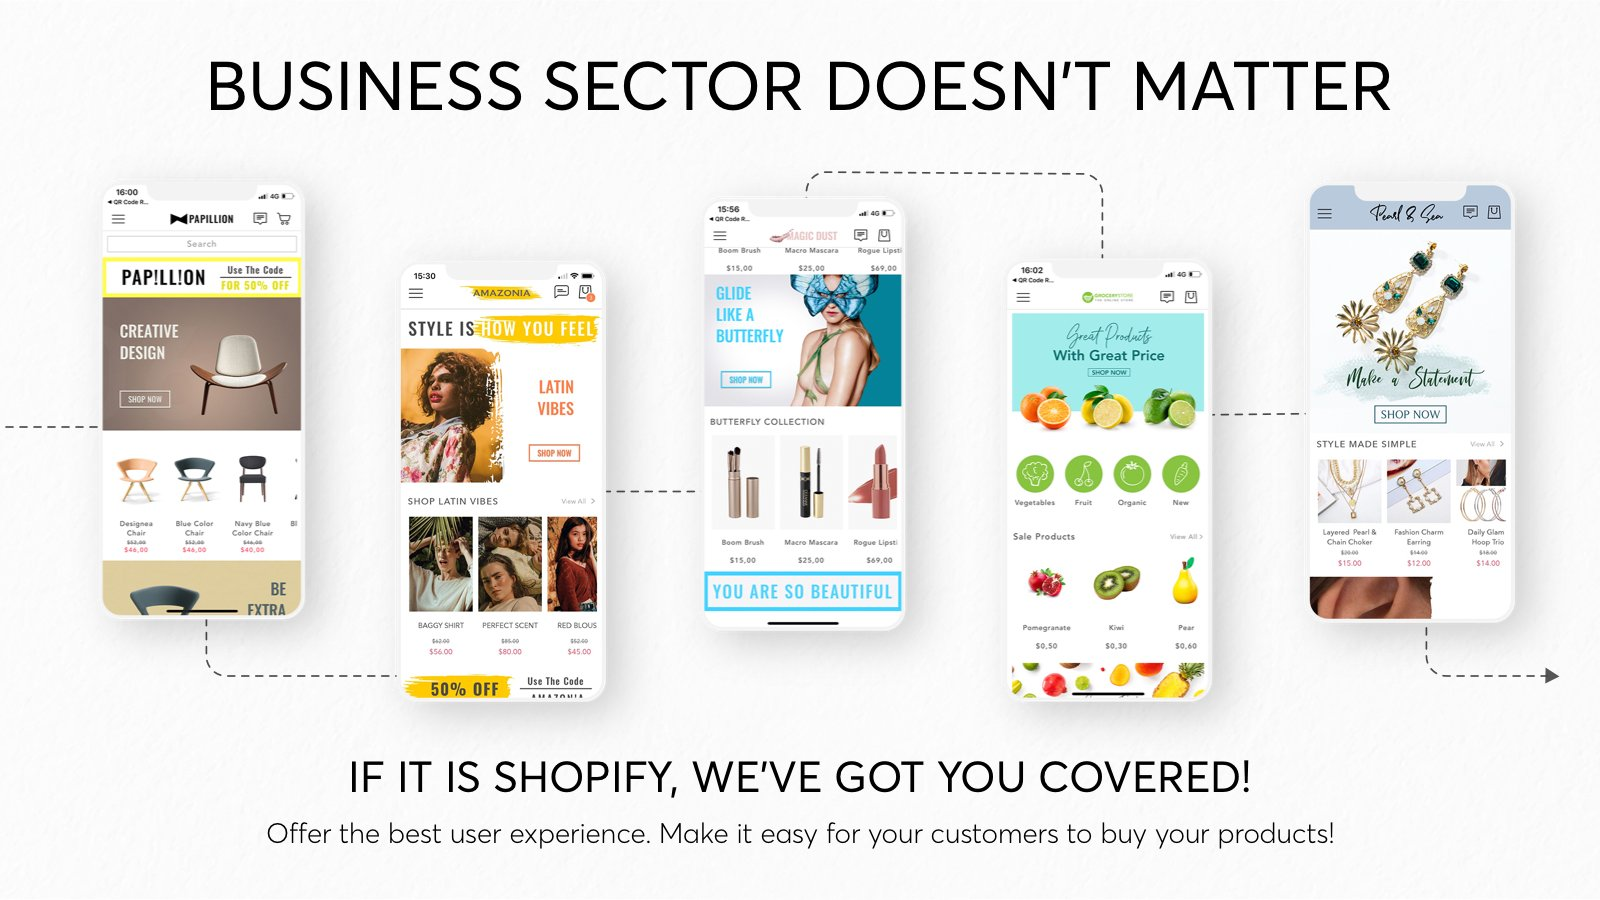 Shopney native iOS and Android apps